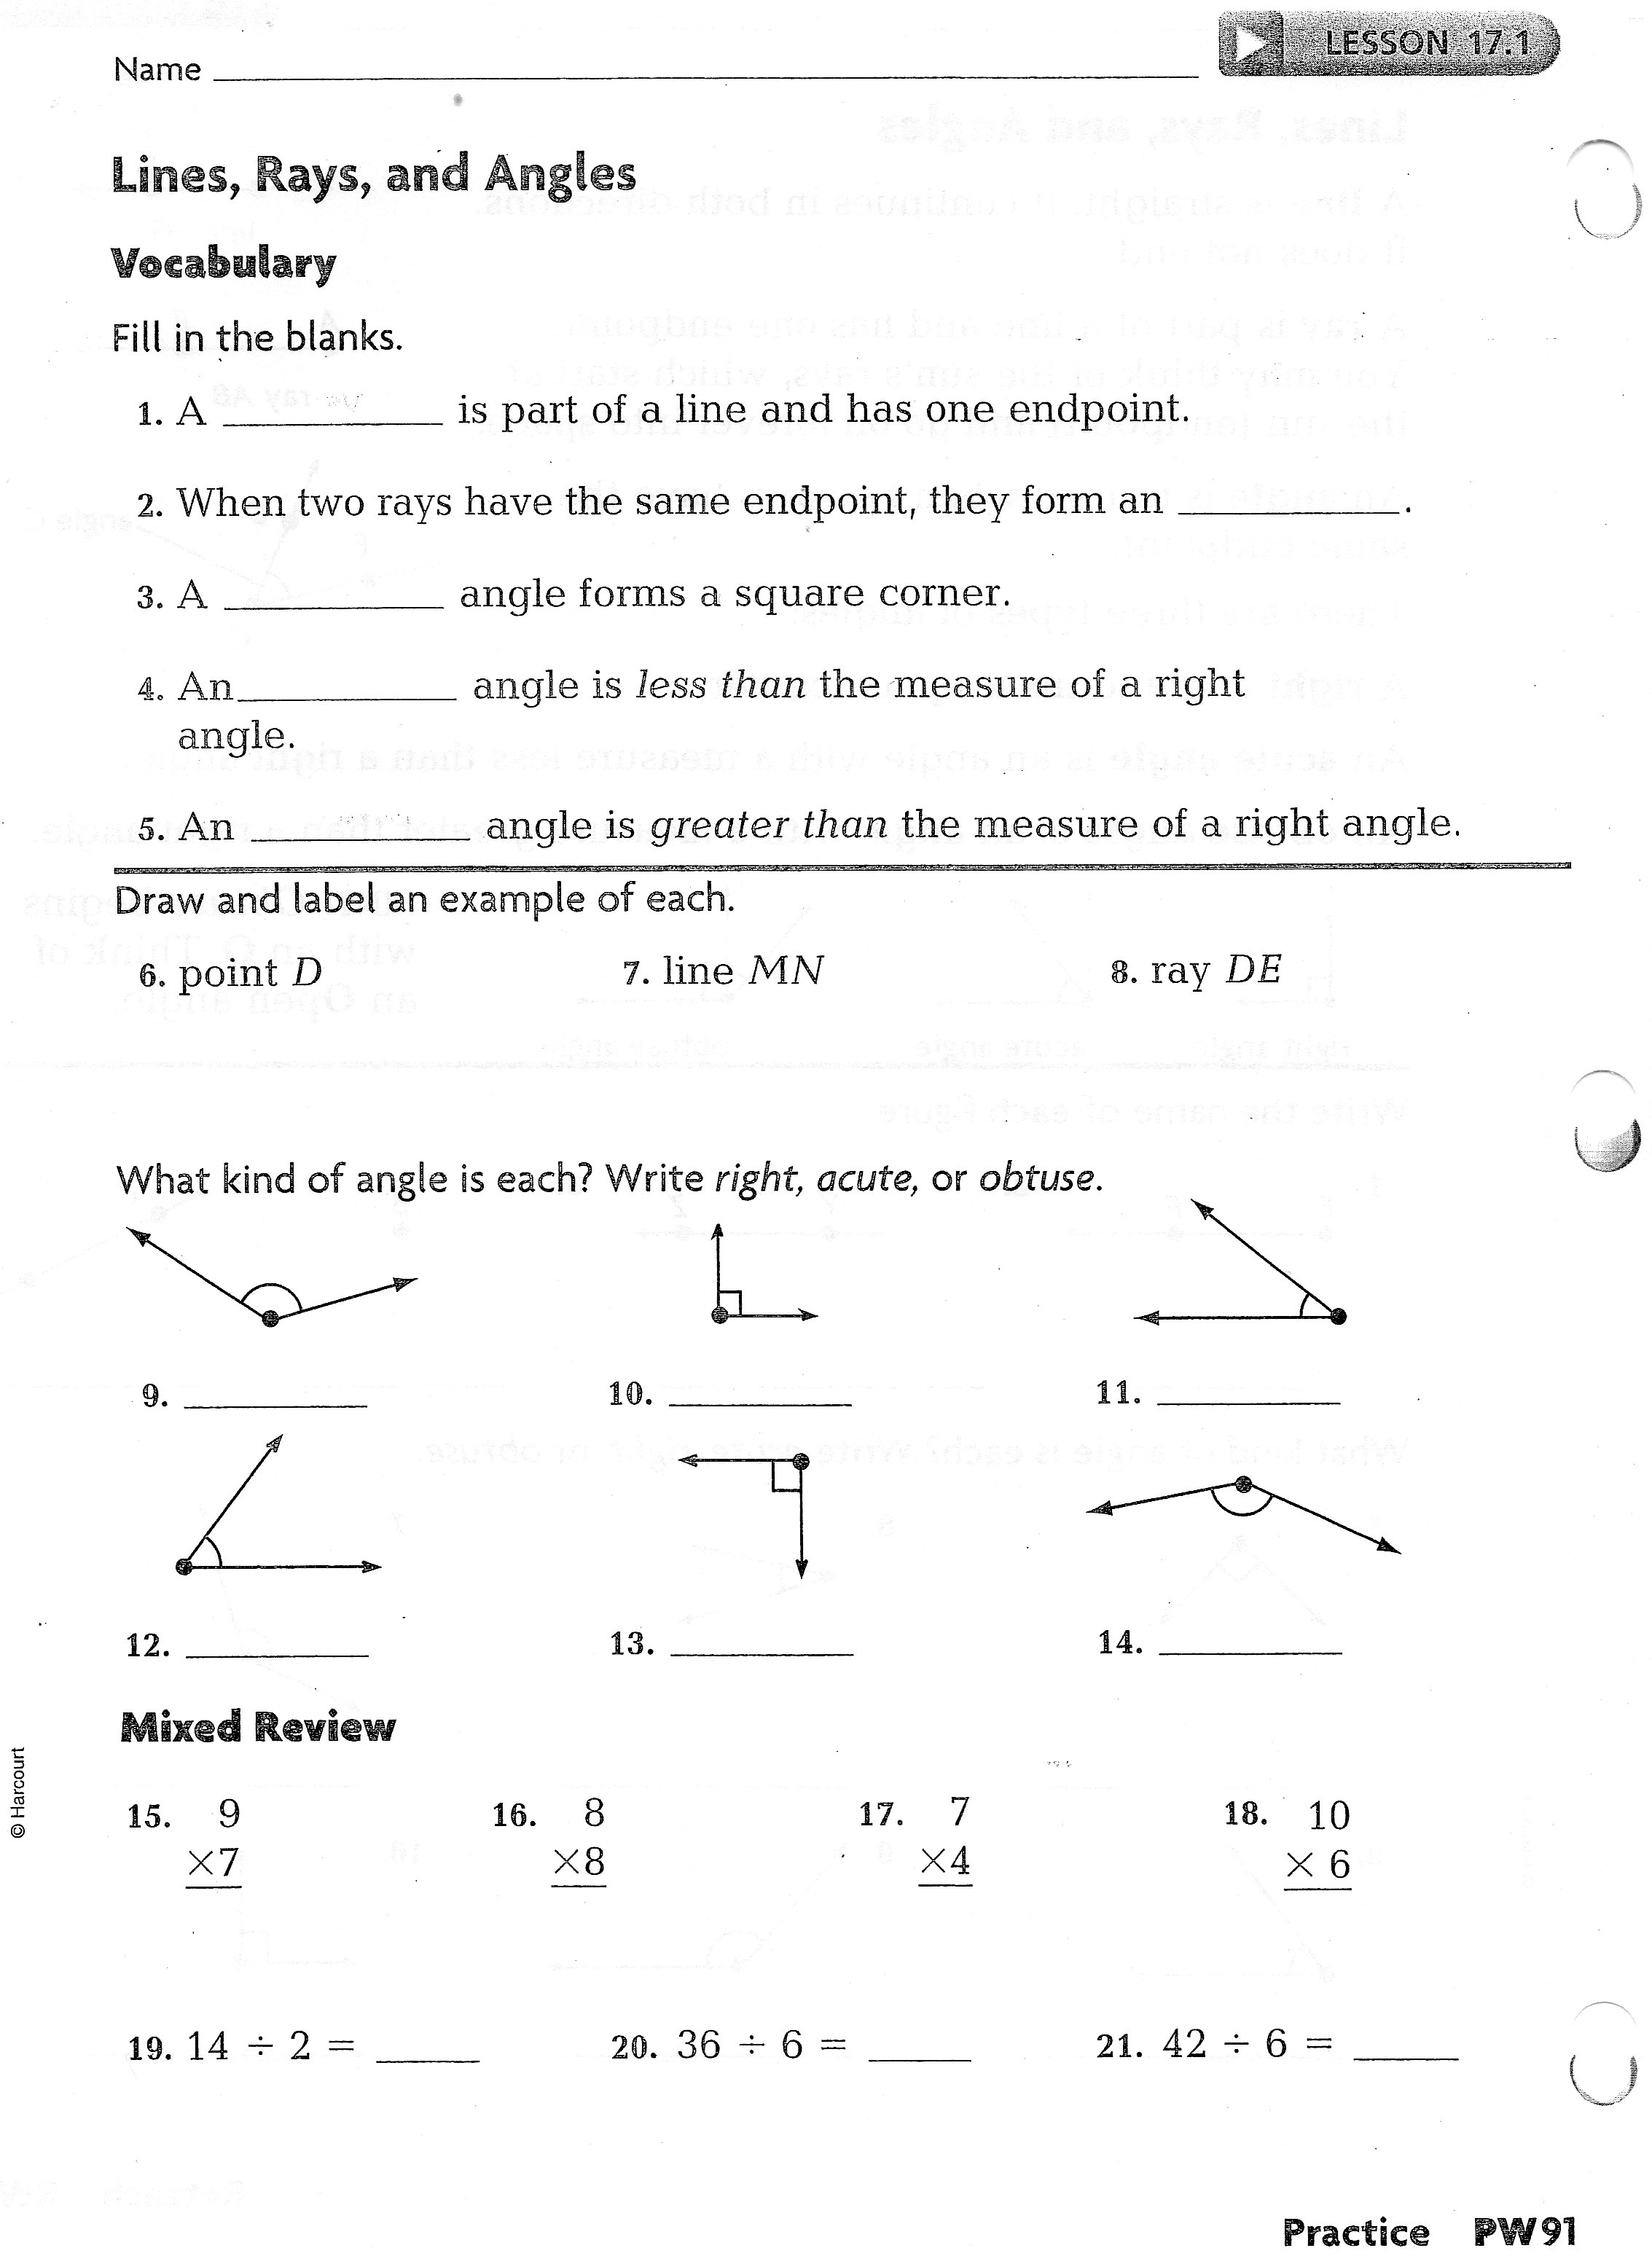 Intersecting Lines Worksheet Key